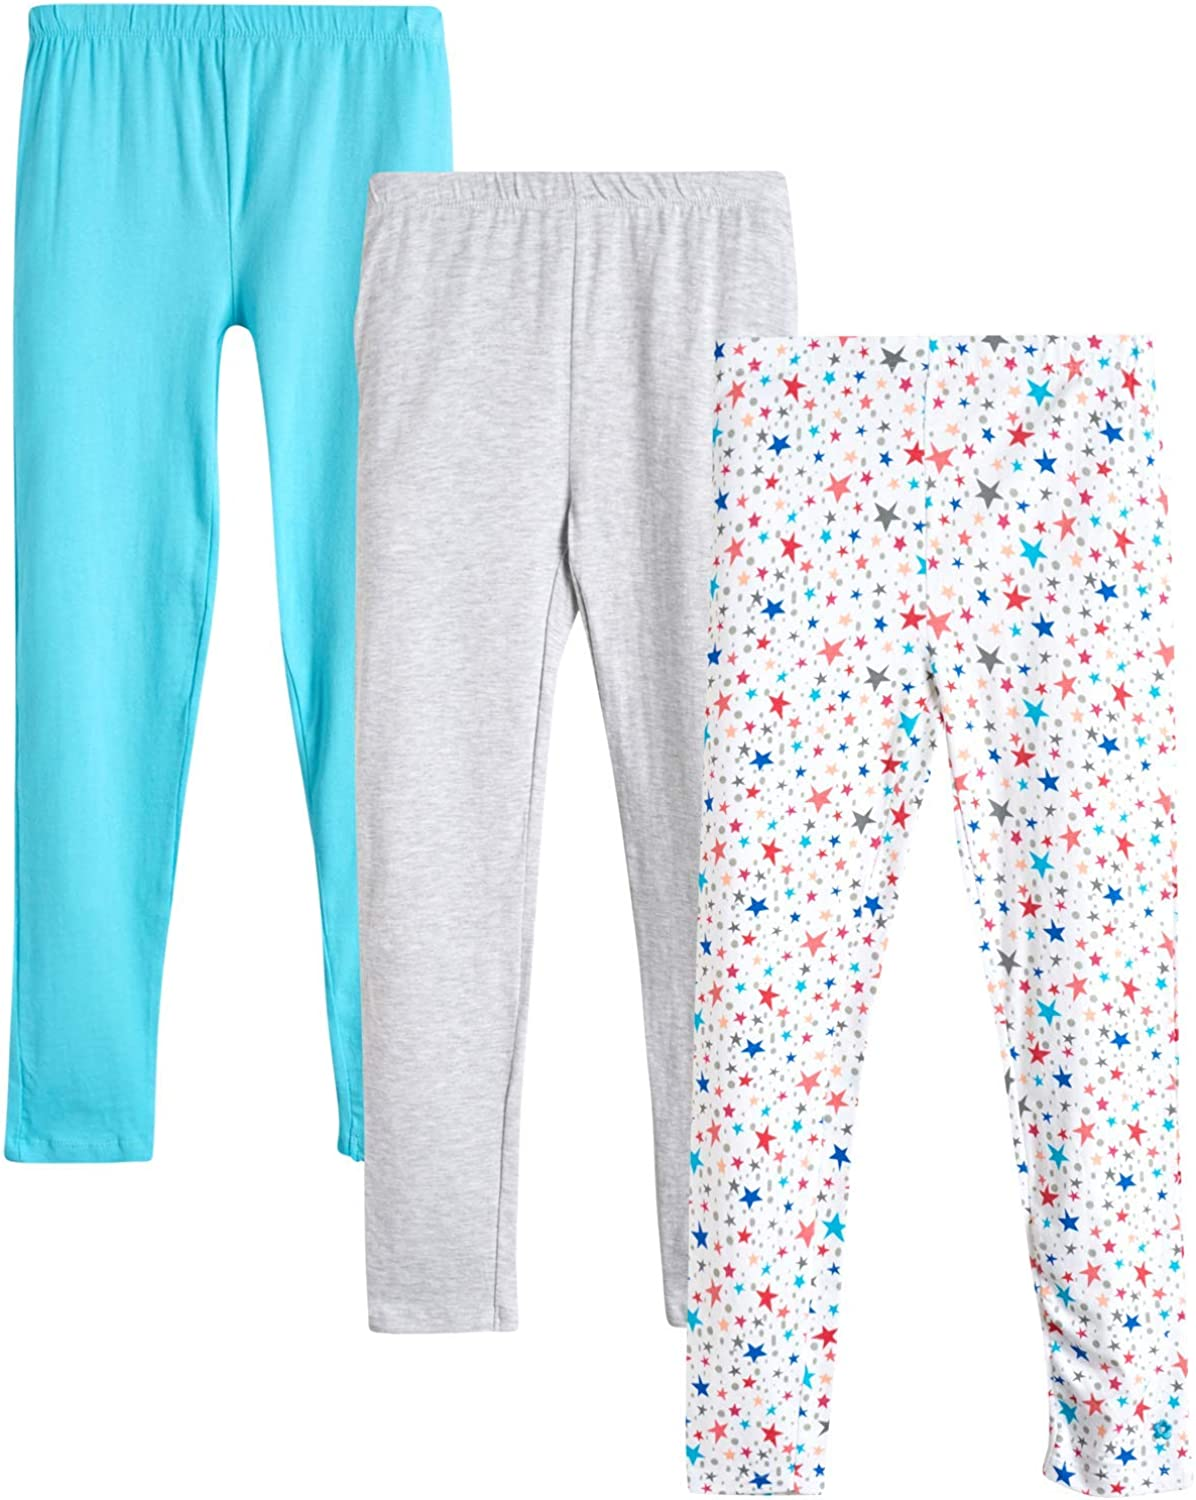 Limited NEW Too Girls' Assorted Casual Knit P We OFFer at cheap prices Leggings Solids and in